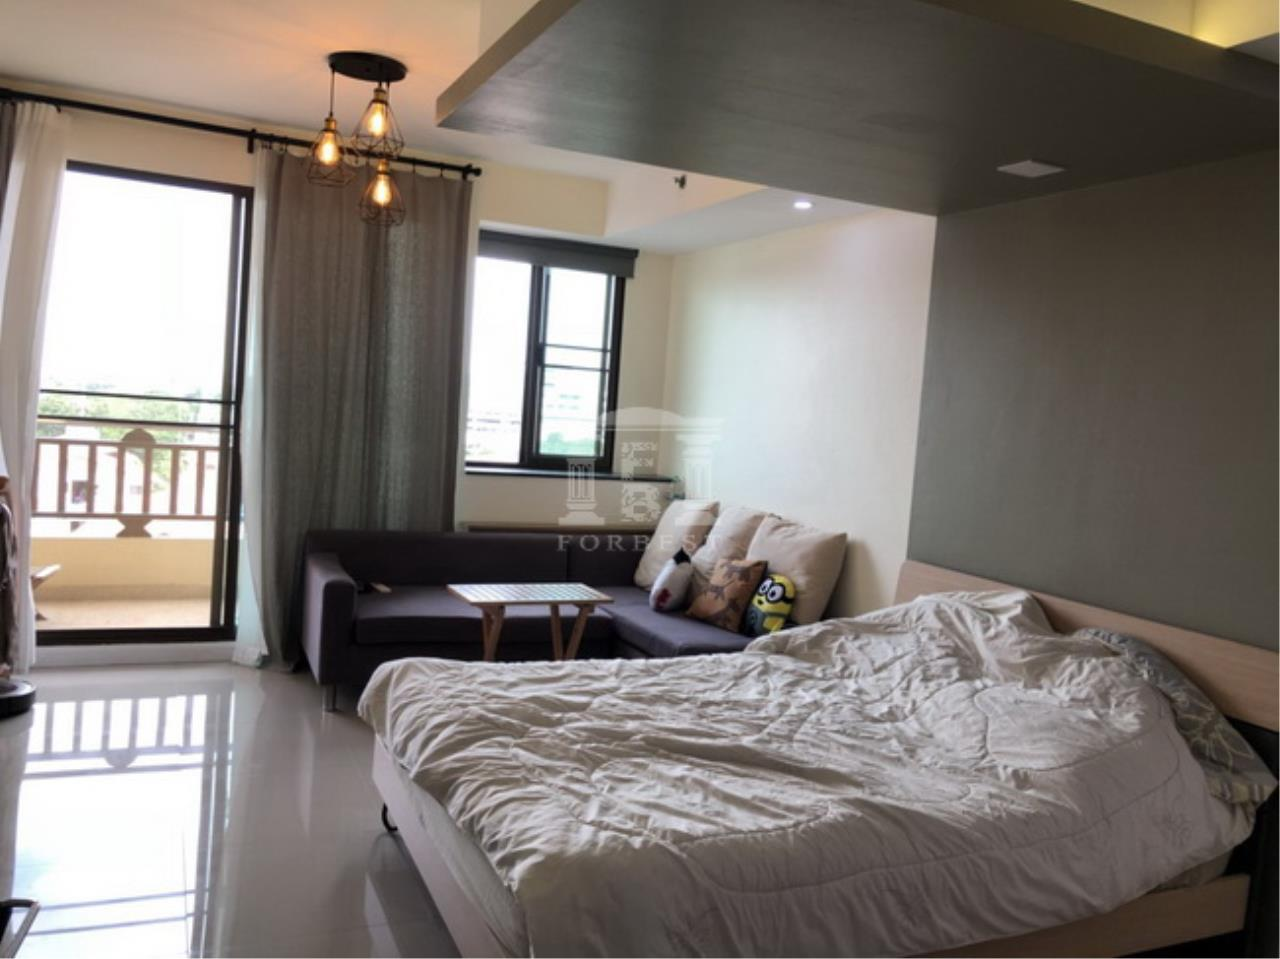 Forbest Properties Agency's 38326 - SUPALAI ORIENTAL PLACE SATHORN-SUANPLU 8 LIVING SPACE 40 SQ.M. 9